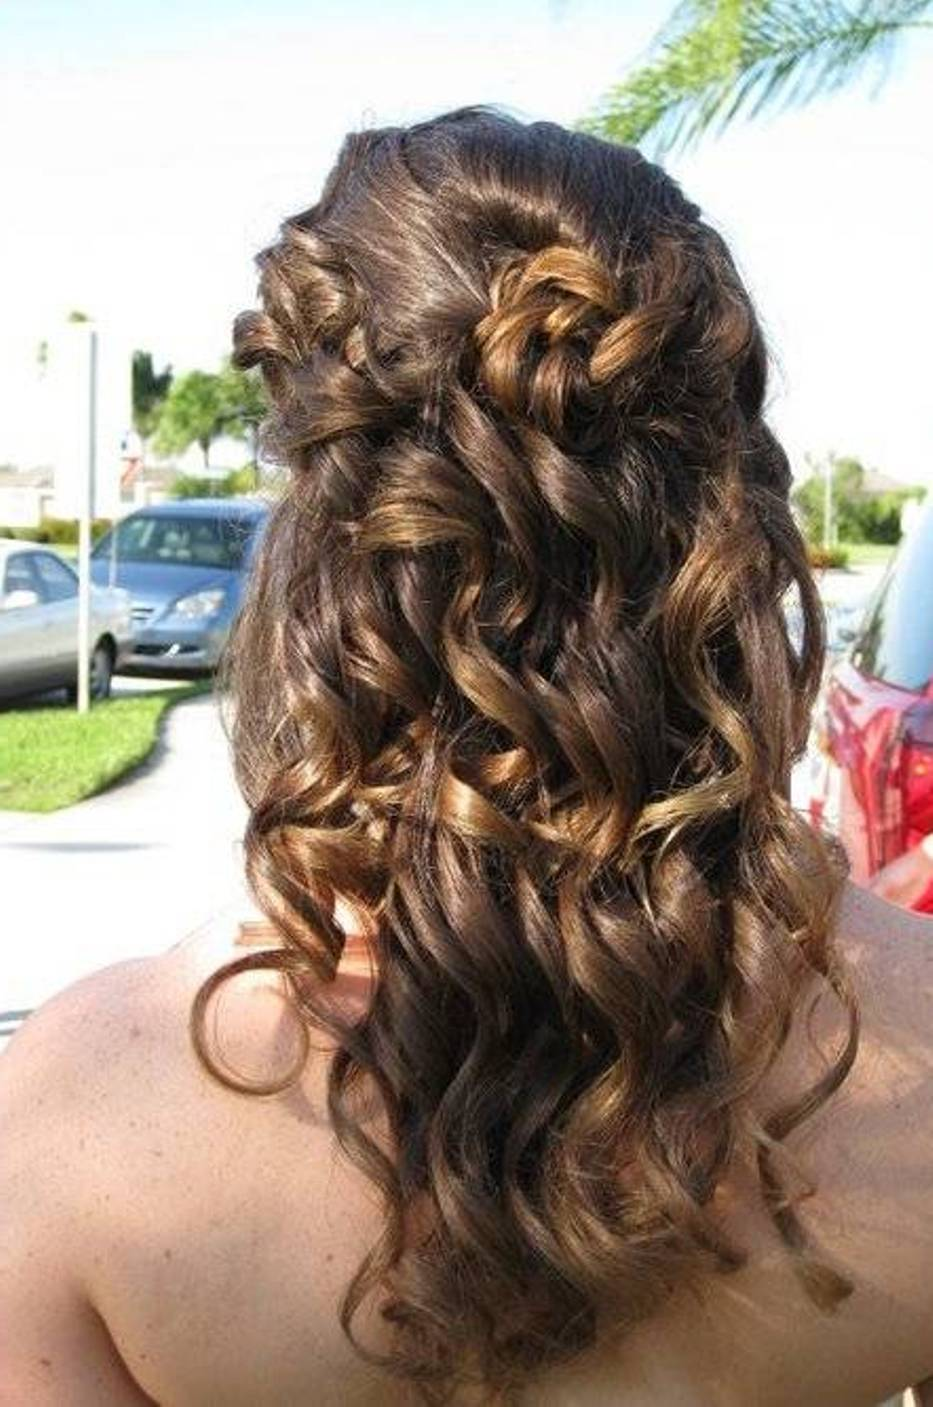 Homecoming Hairstyles Ideas For Stylish Women S The Xerxes